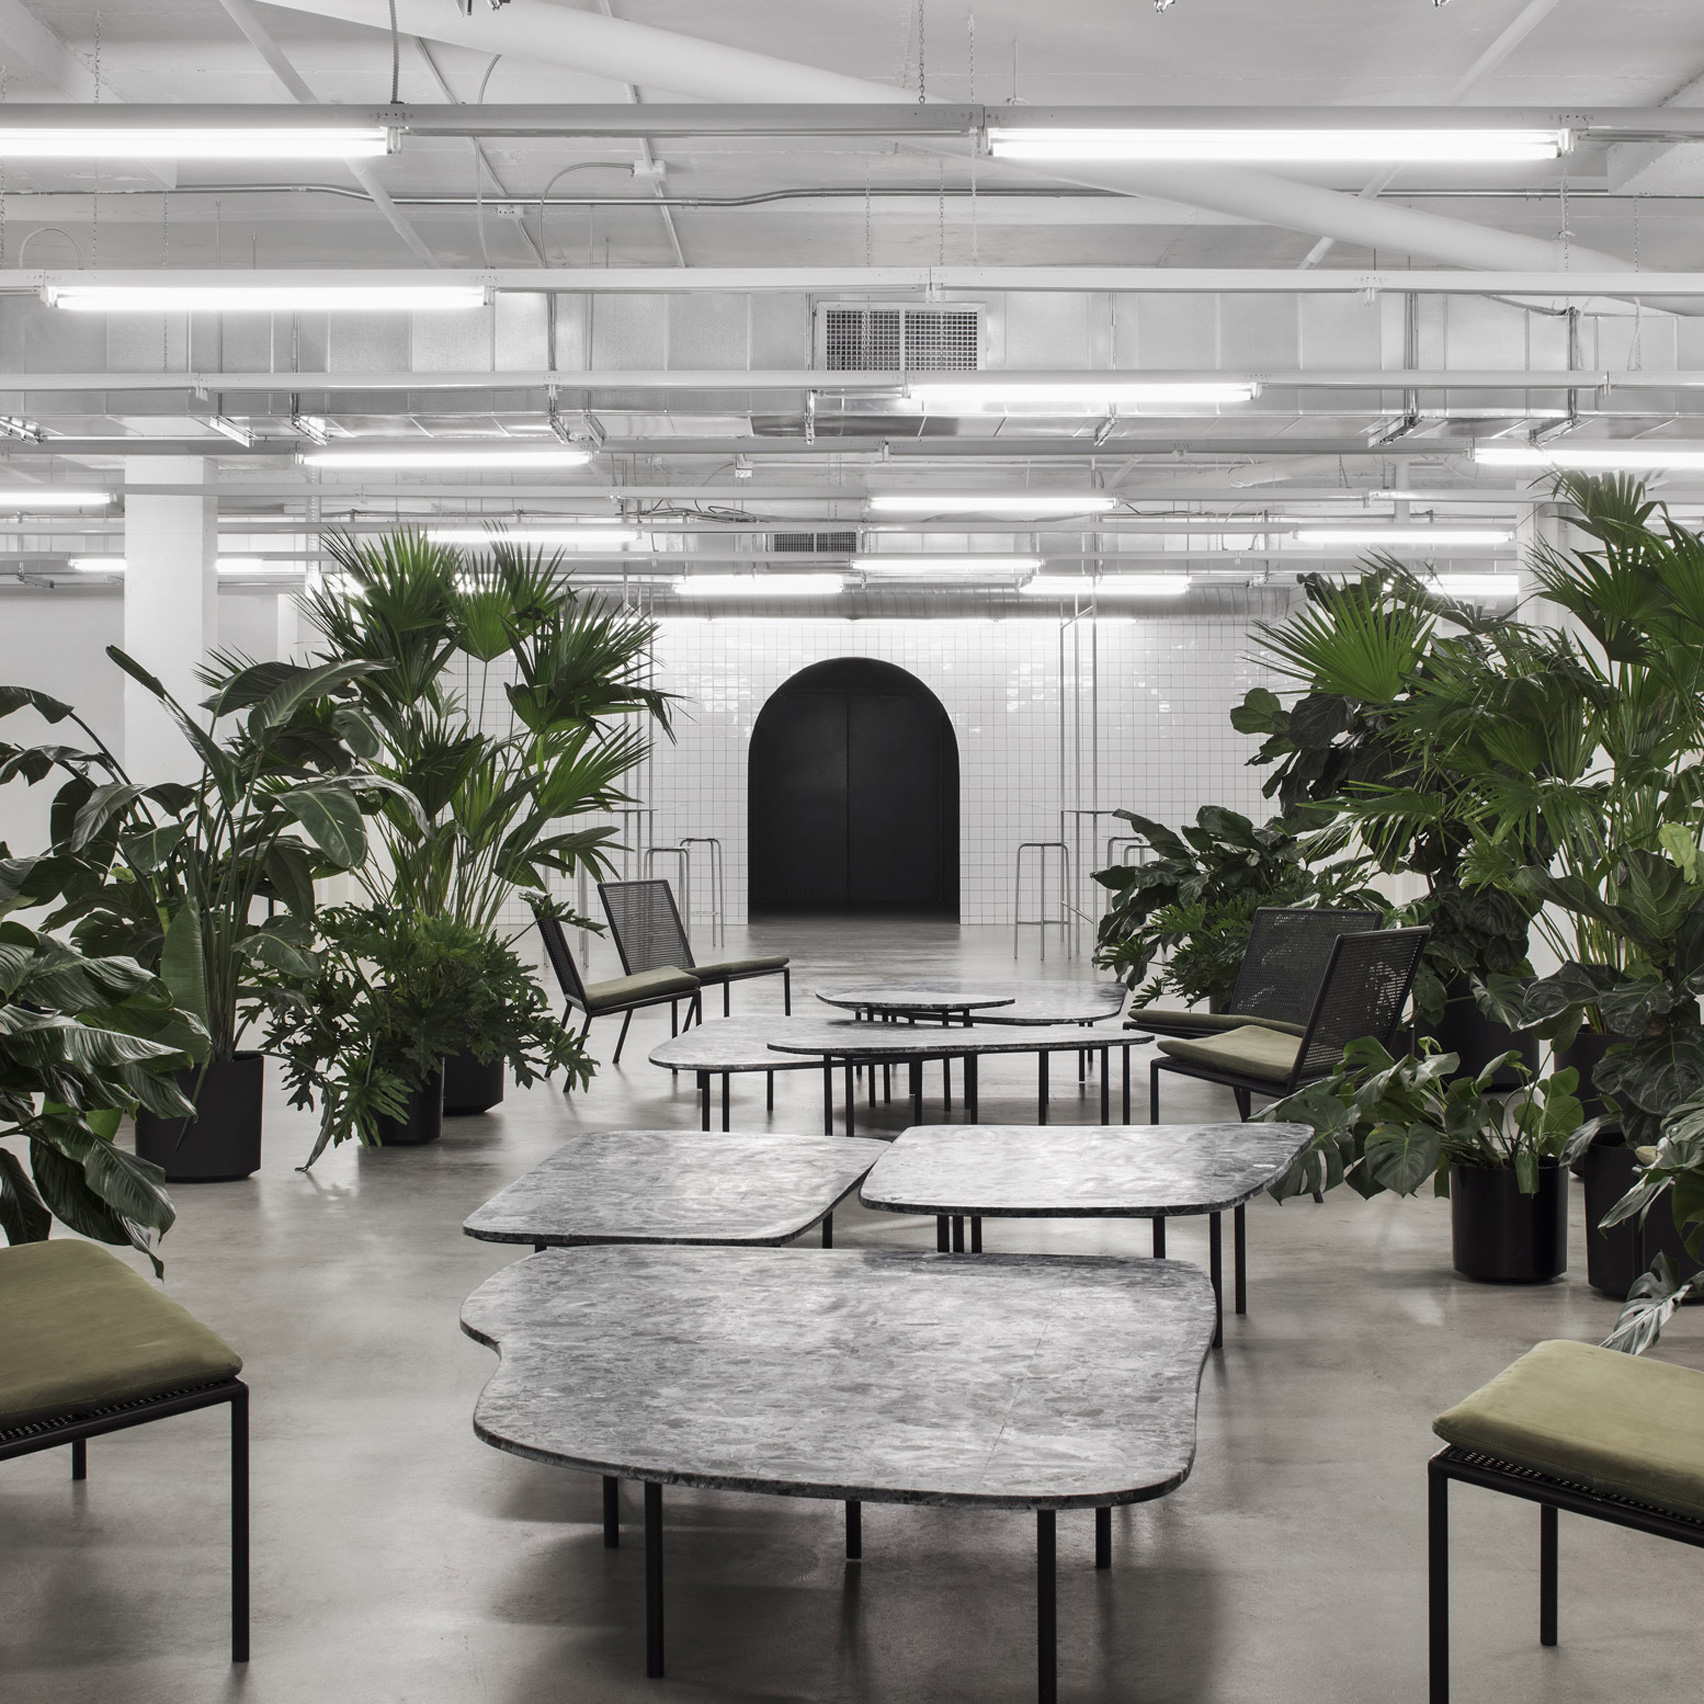 Atelier Barda combines foliage with bespoke furniture at fashion brand  offices